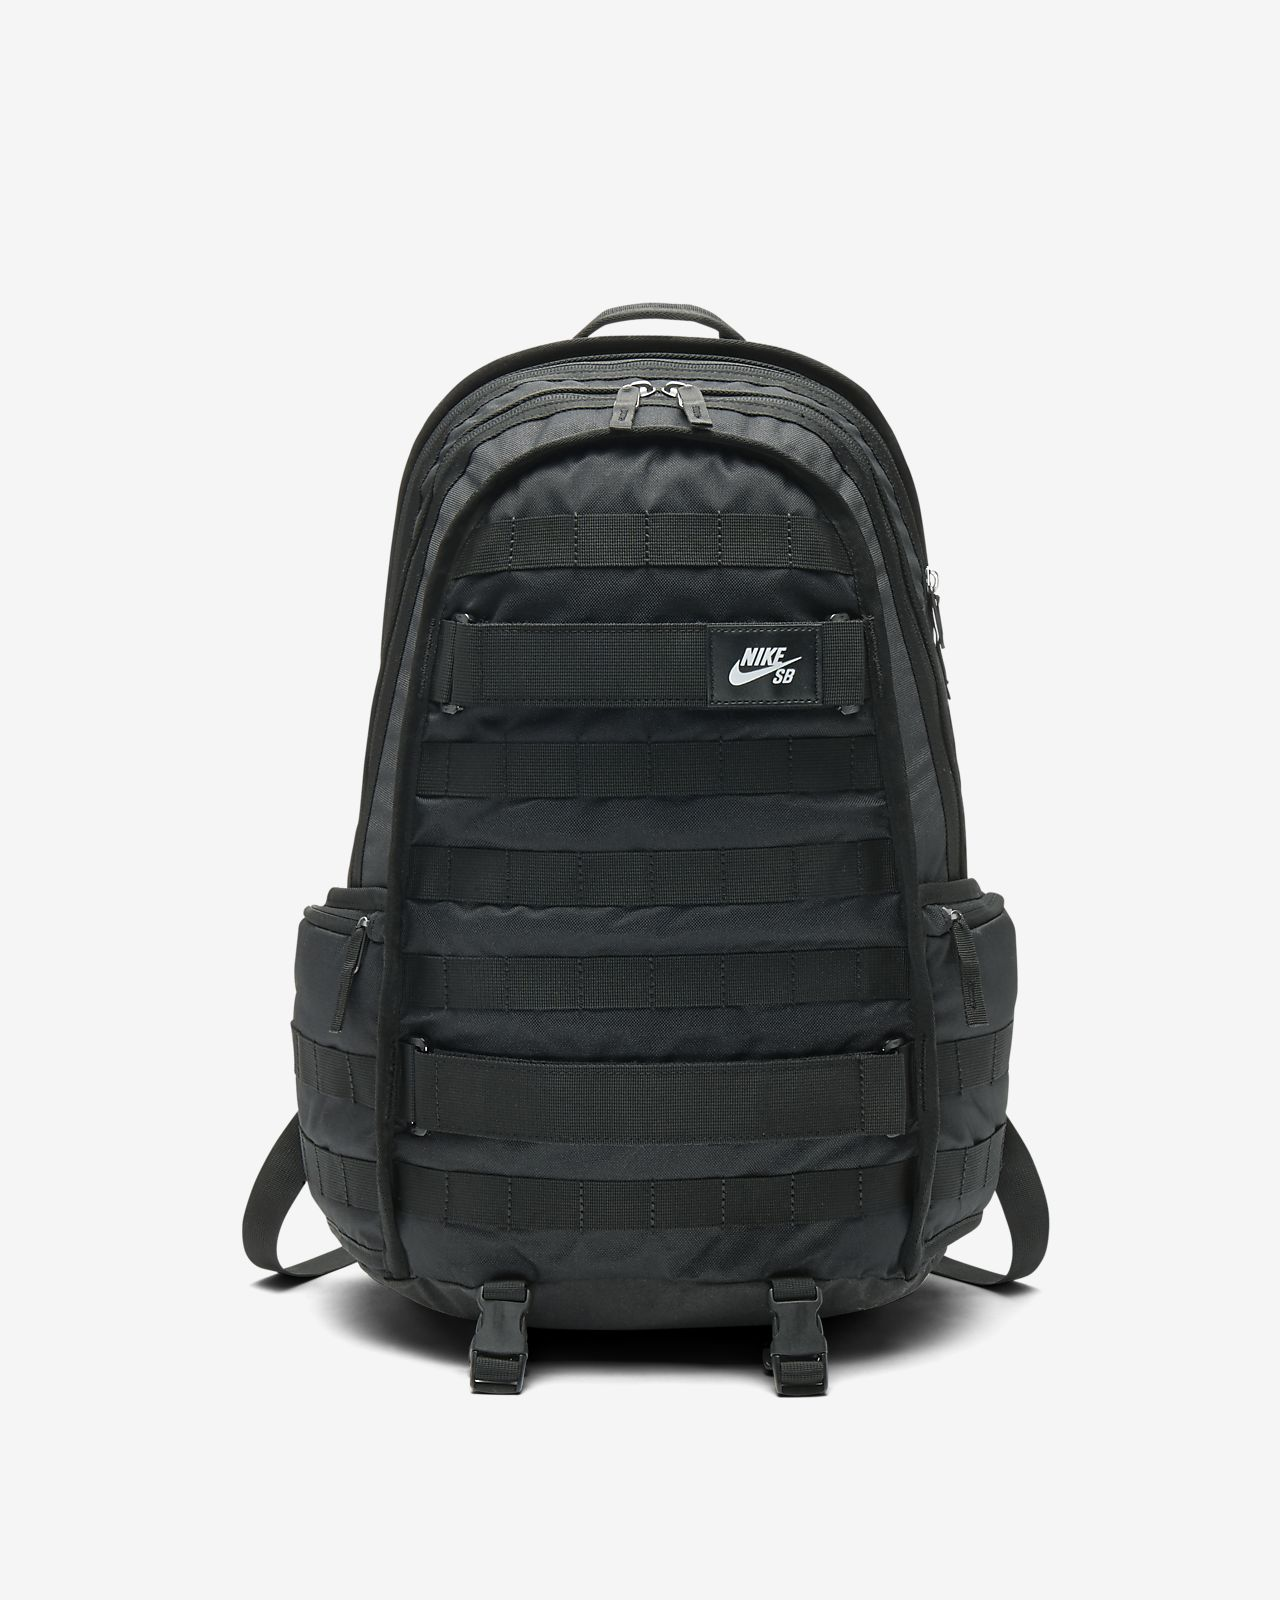 2e03e3bcb2 Low Resolution Nike SB RPM Skateboarding Backpack Nike SB RPM Skateboarding  Backpack